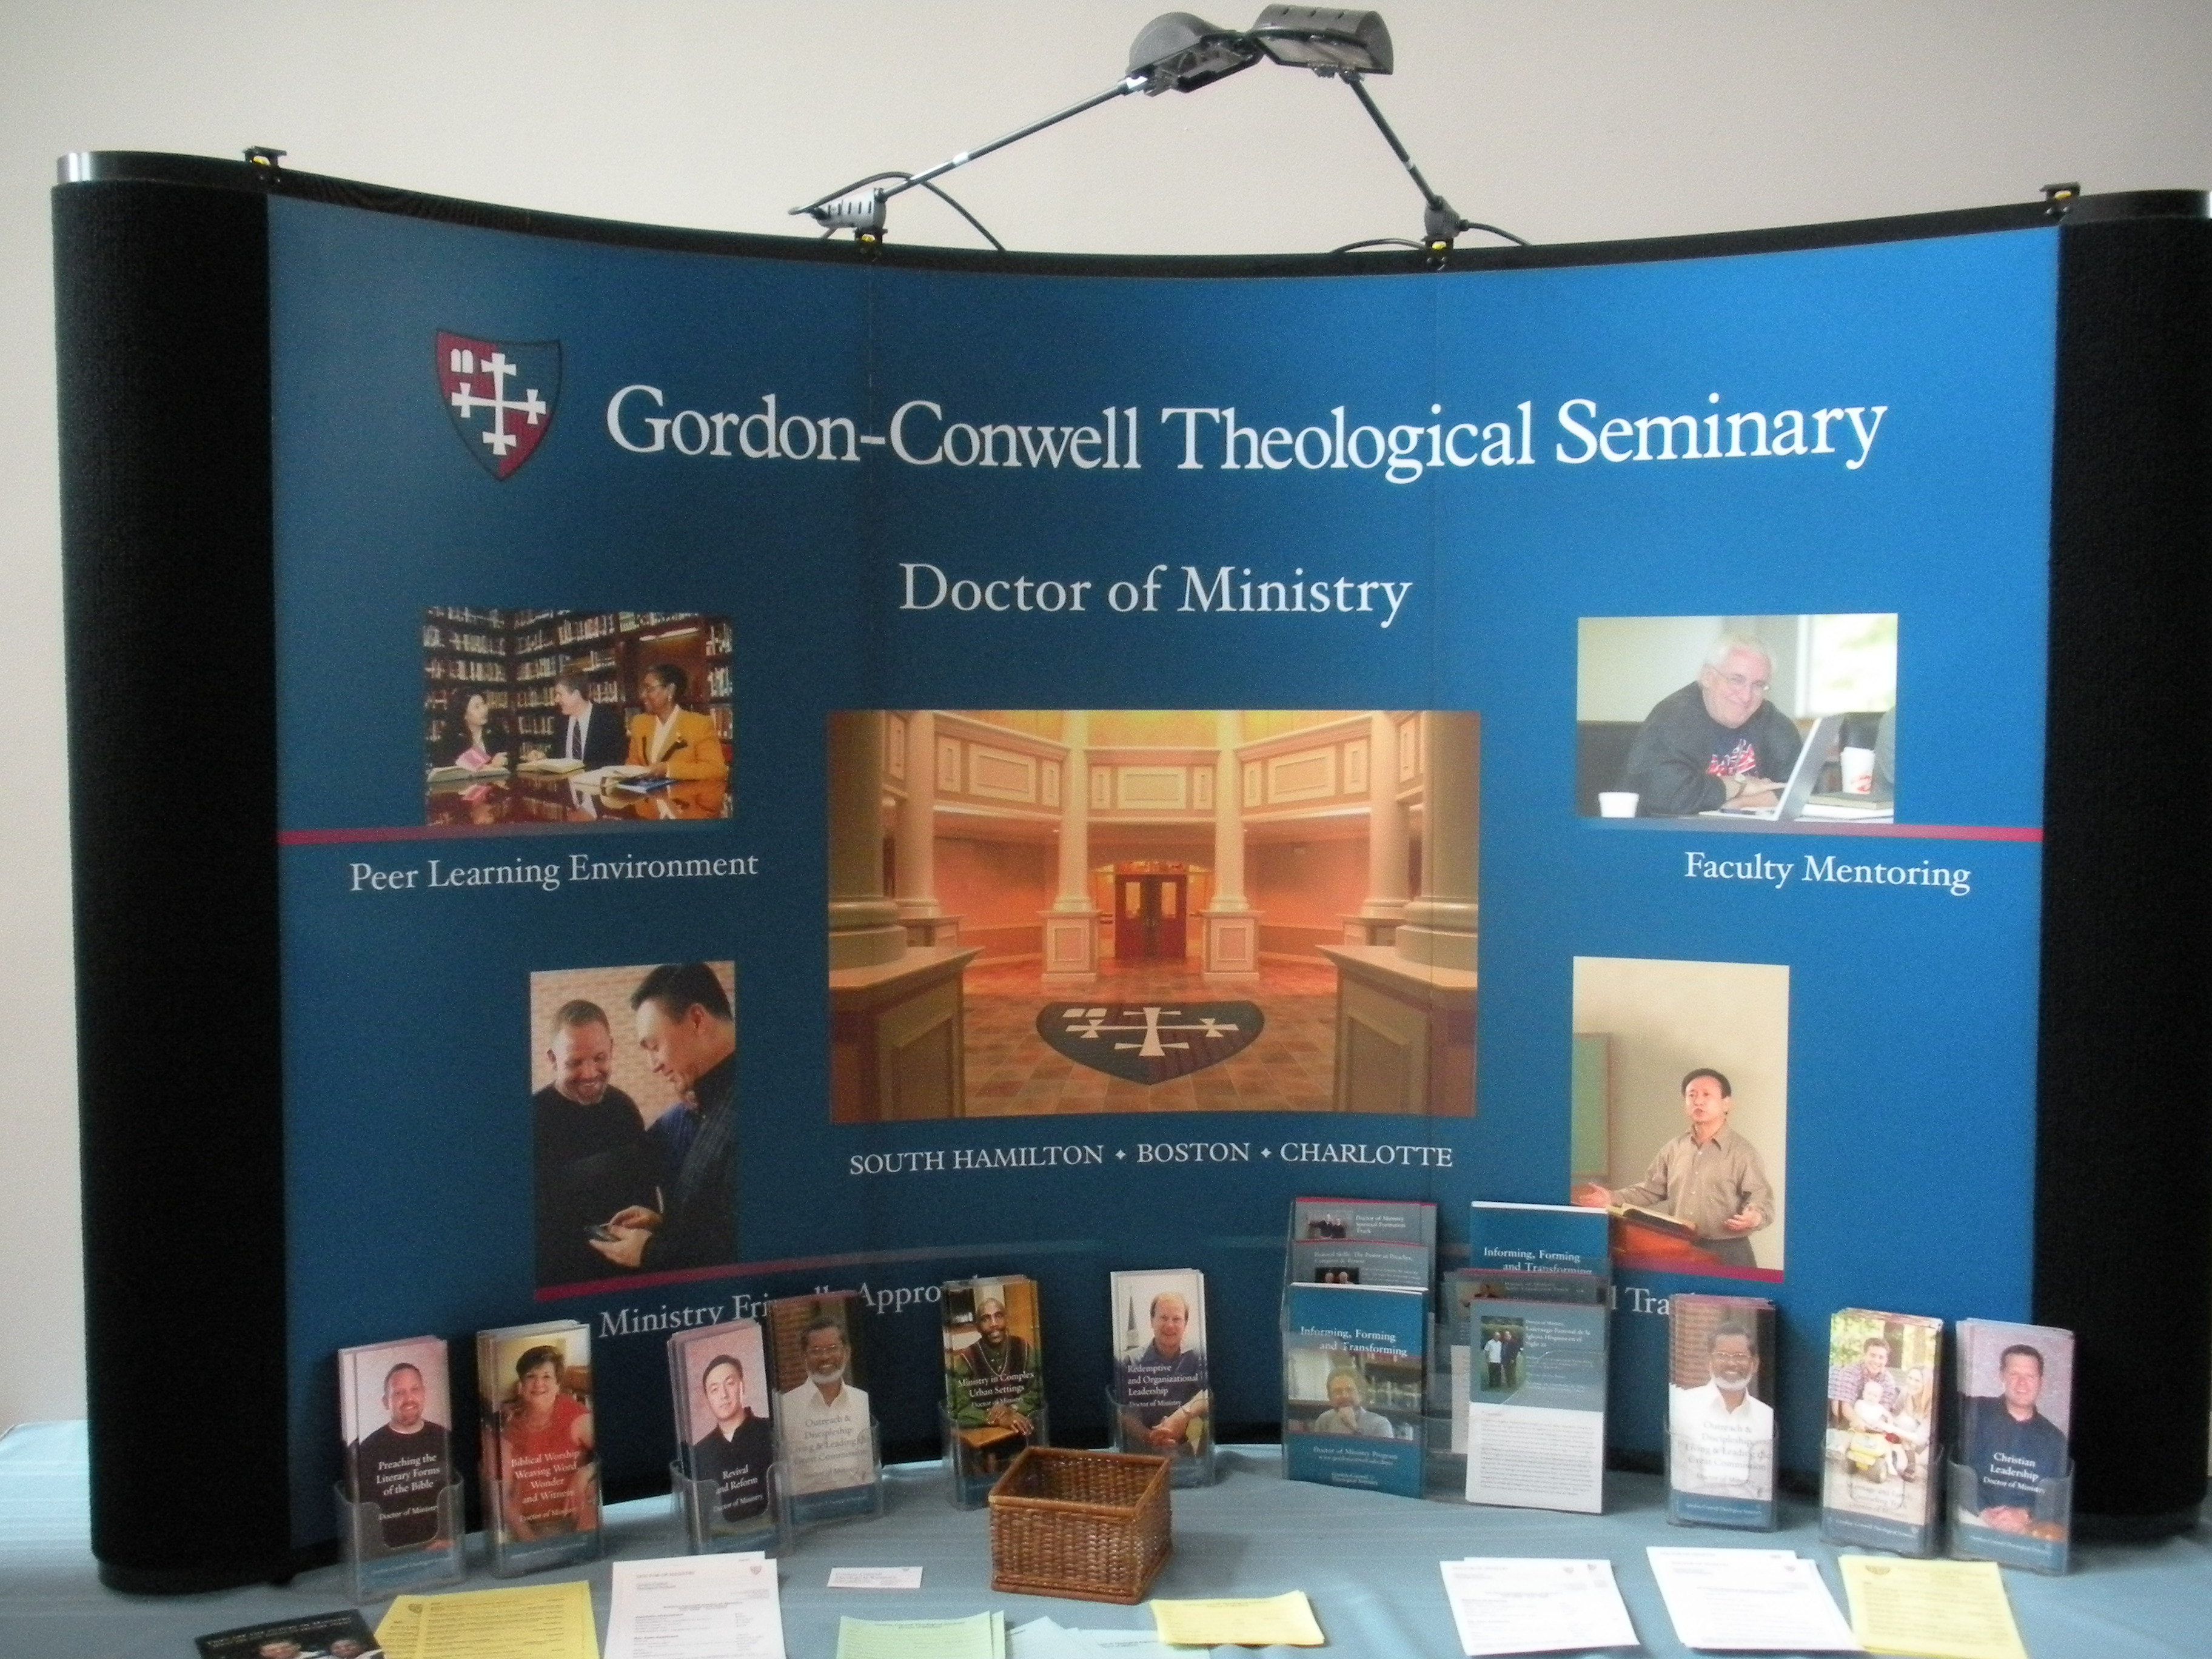 I am on D.Min. display table at Gordon-Conwell!